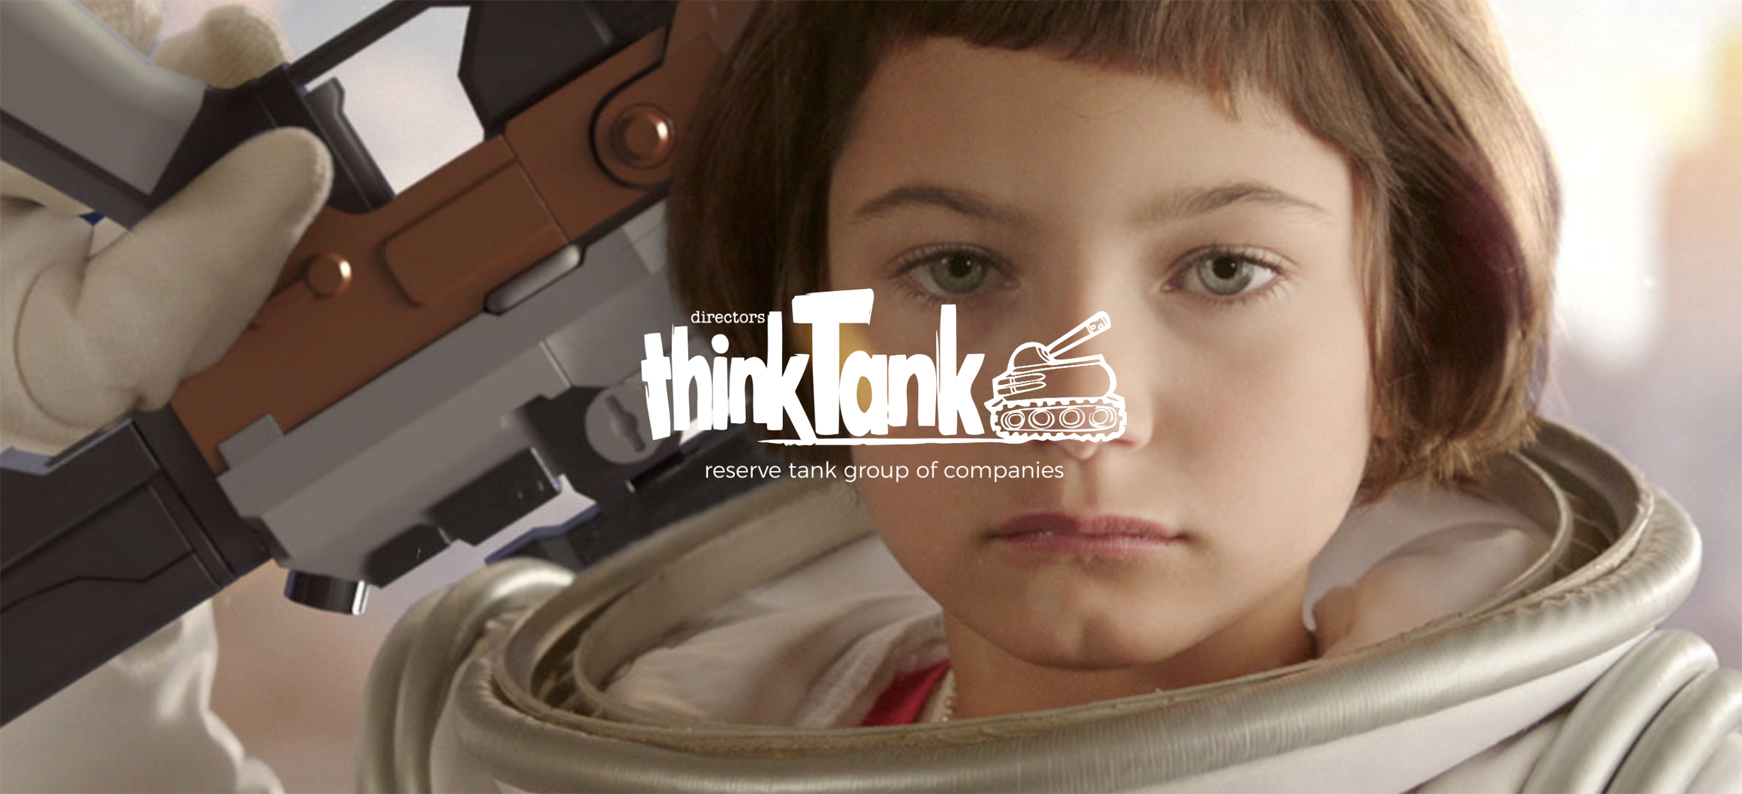 FINCH takes out Production Company of the Year title in Campaign Brief's THE WORK 2019; At #2 in Asia-Pacific is Director's Think Tank and at #3 are Airbag, Goodoil and Revolver/Will O'Rourke